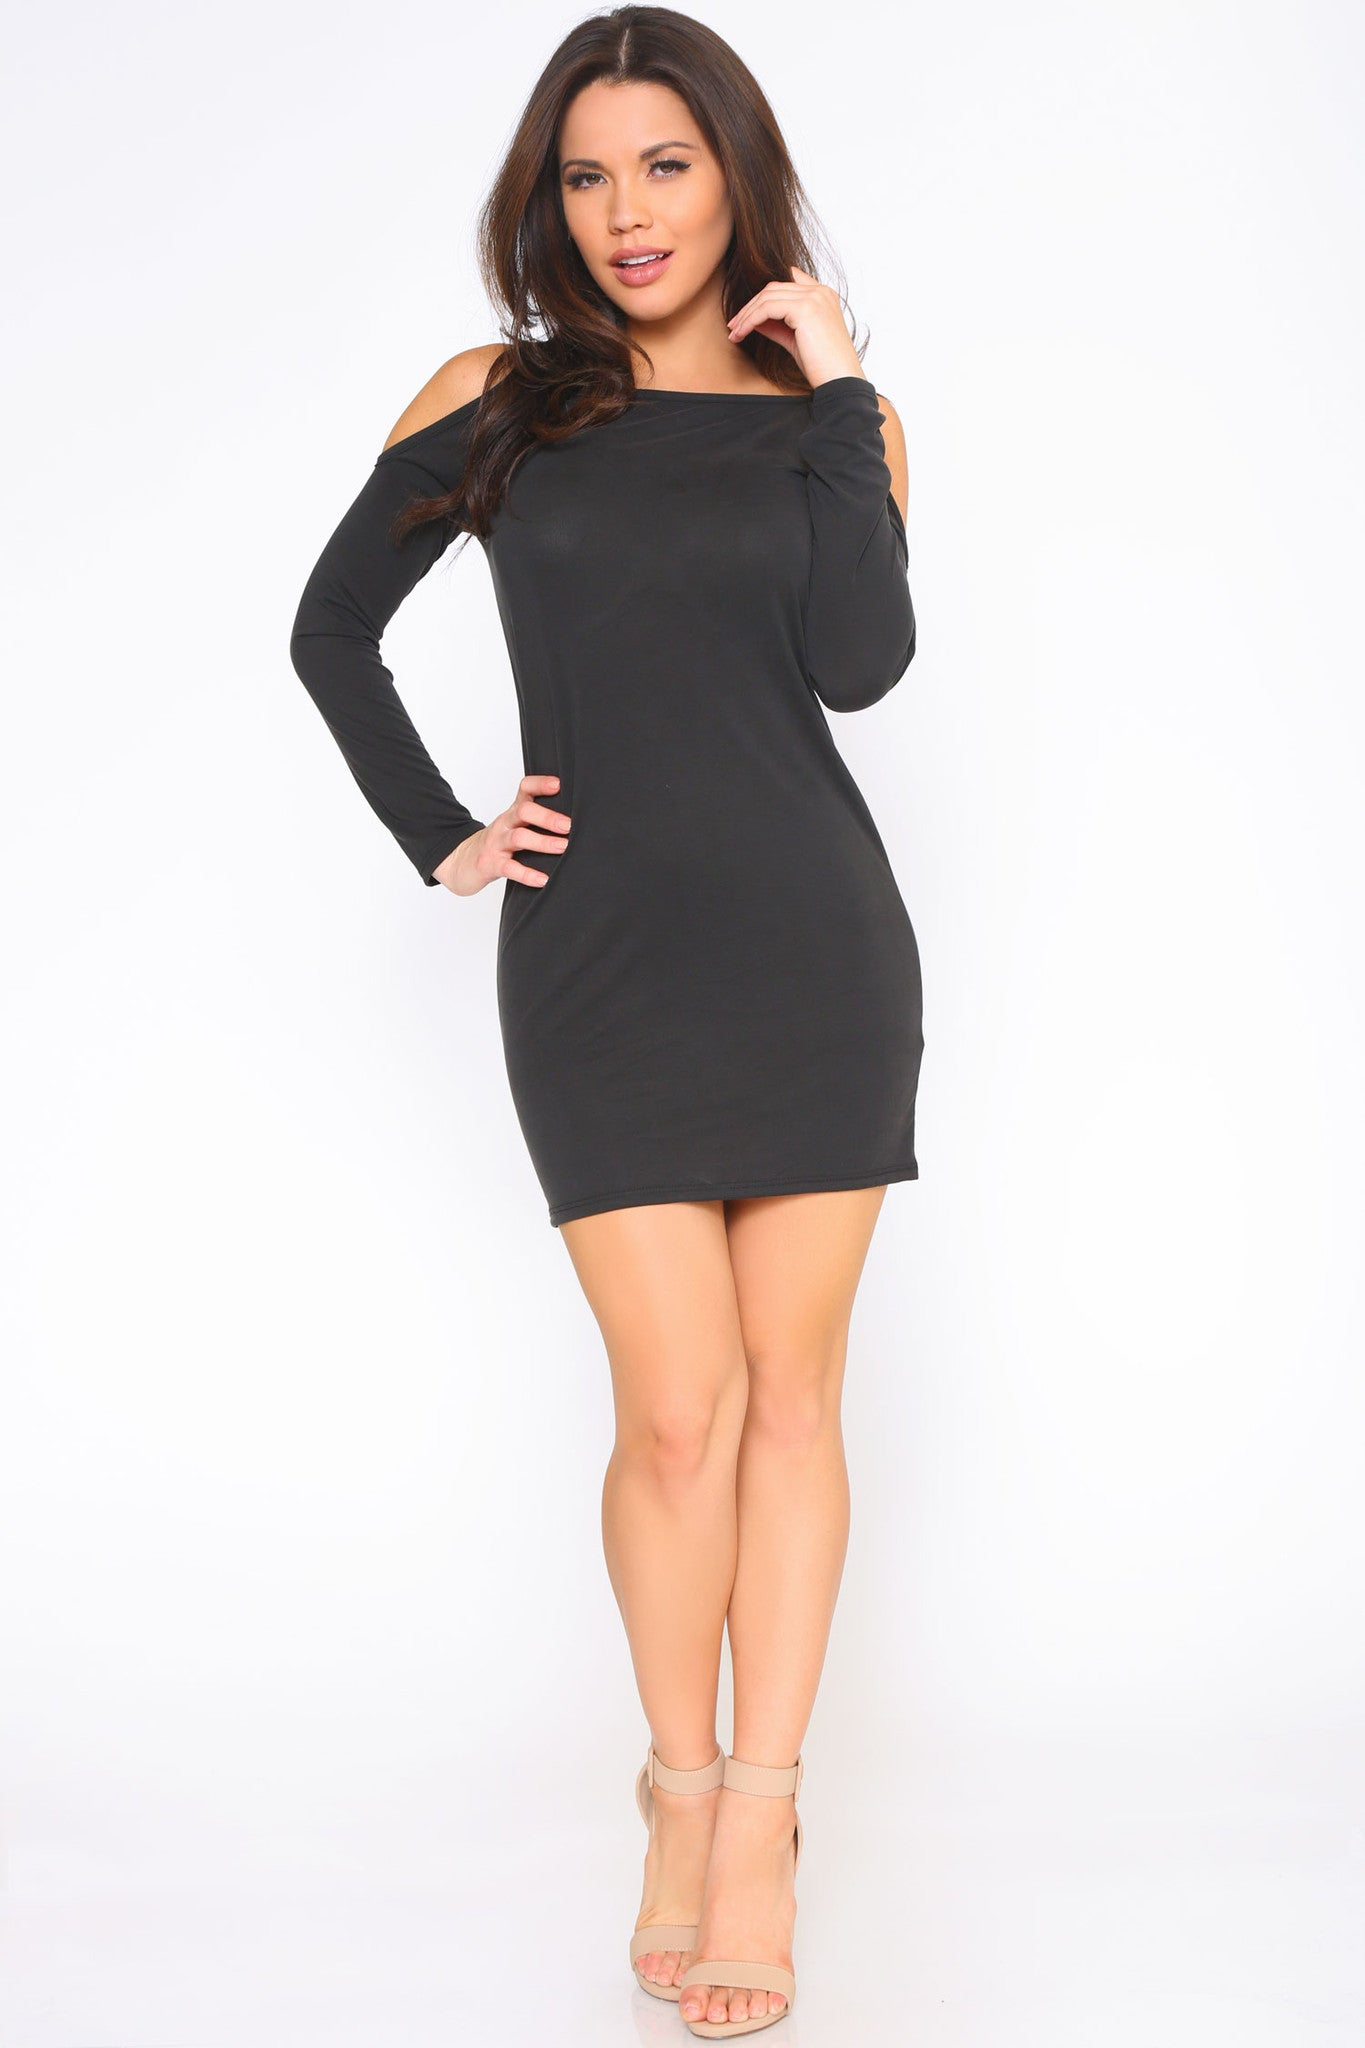 ARLETTE DRESS - Glam Envy - 1